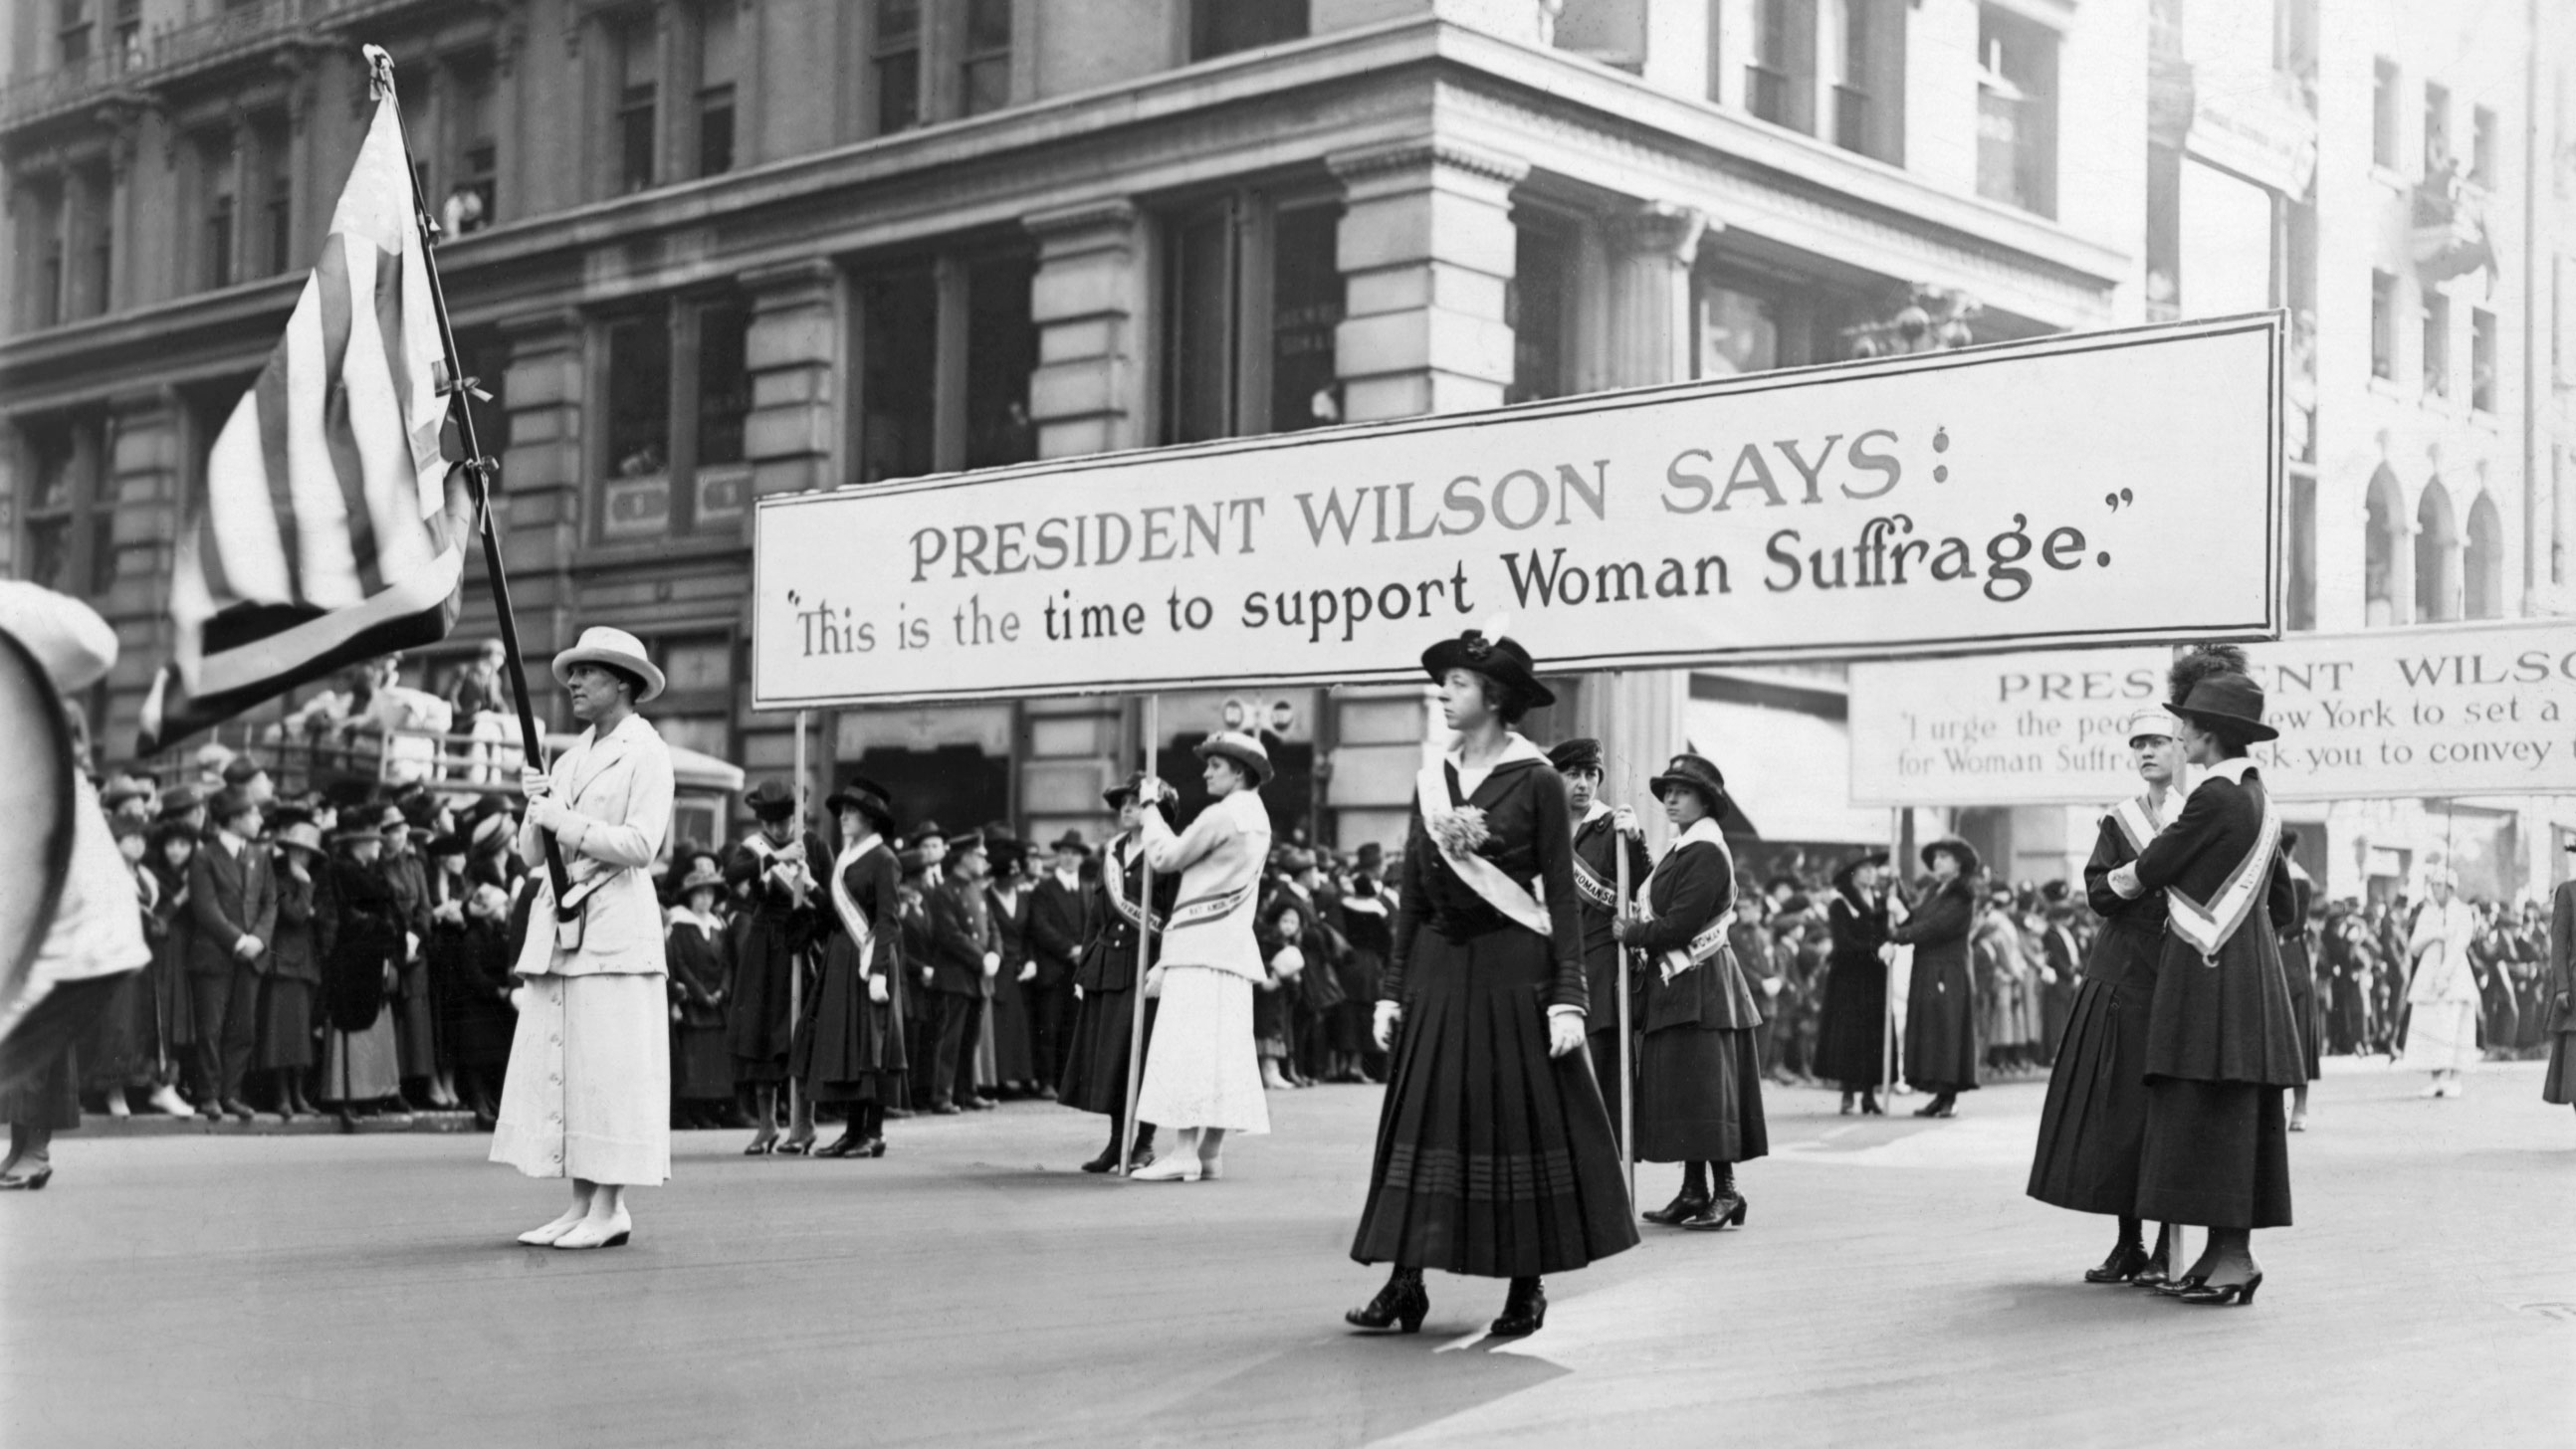 American Women S Suffrage Came Down To One Man S Vote